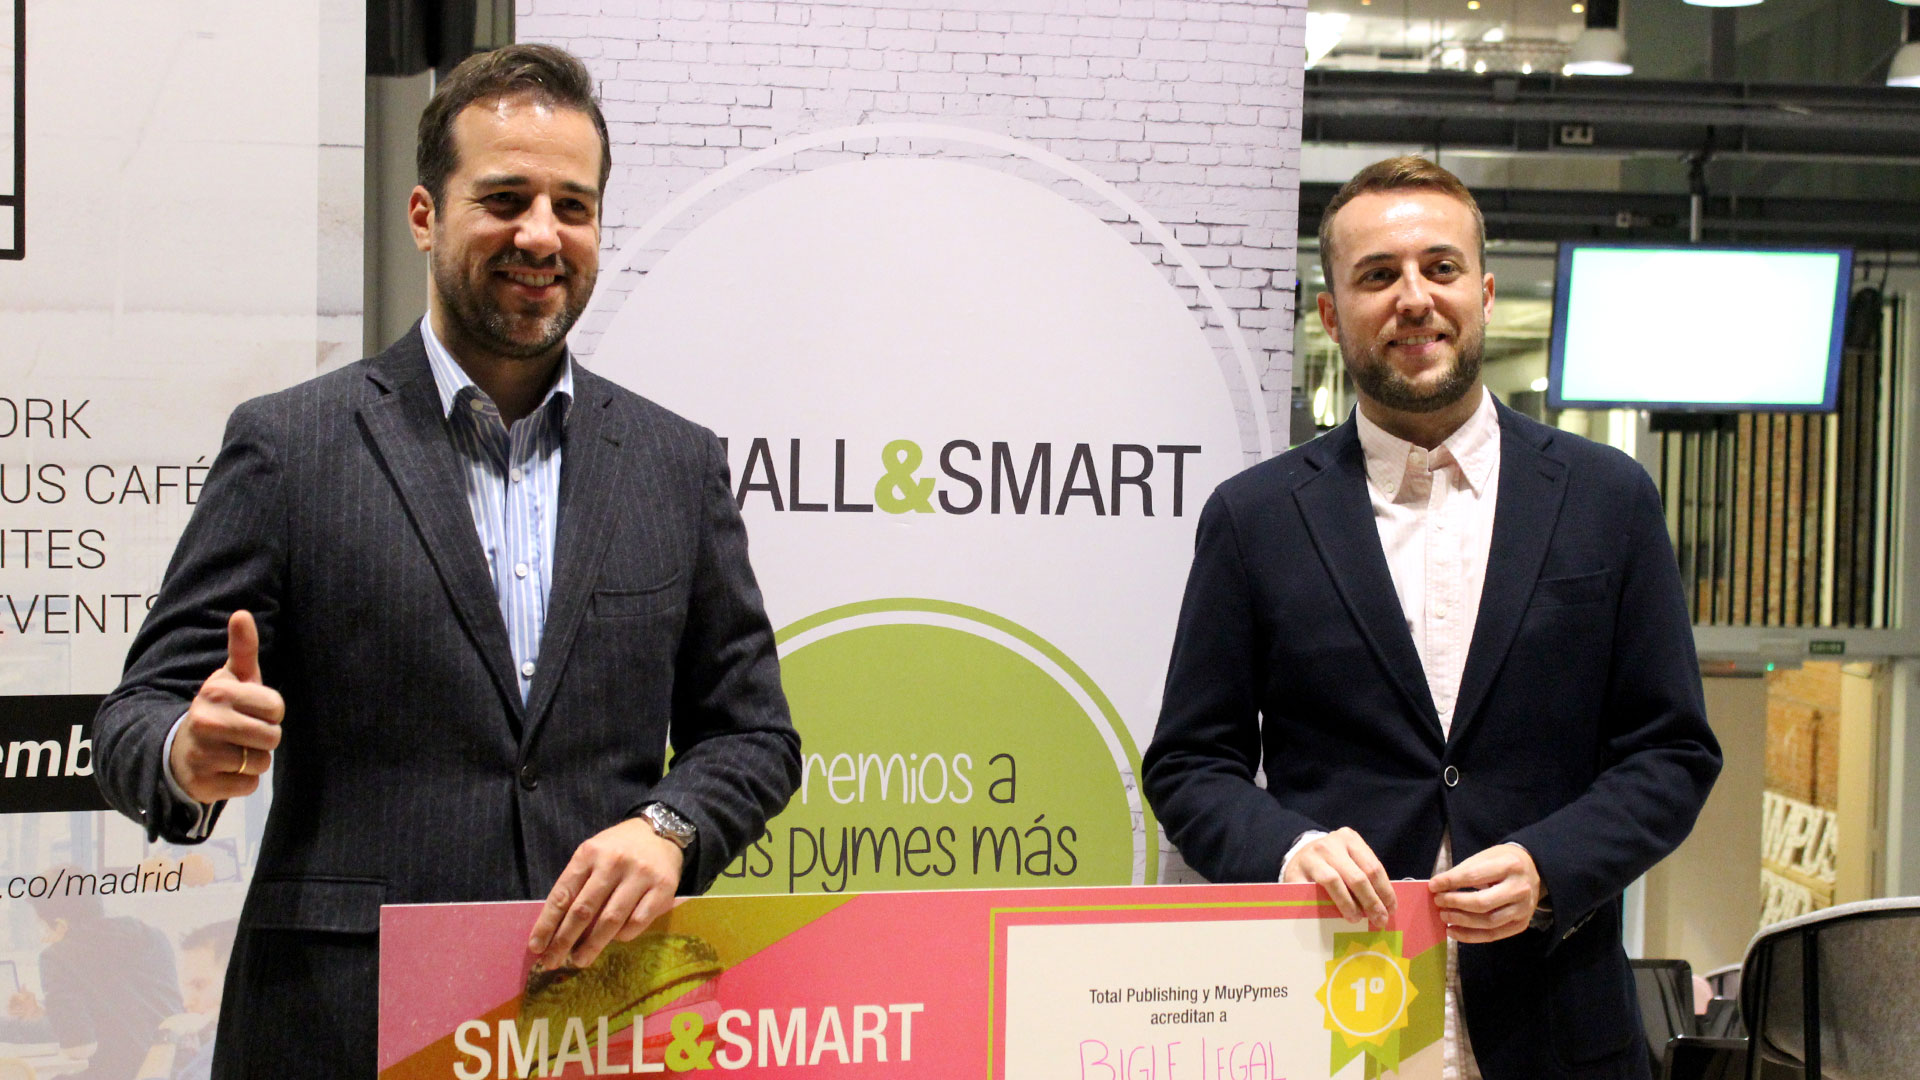 tpnet-small-smart-2016-evento-startups-primer-premio-bigle-legal